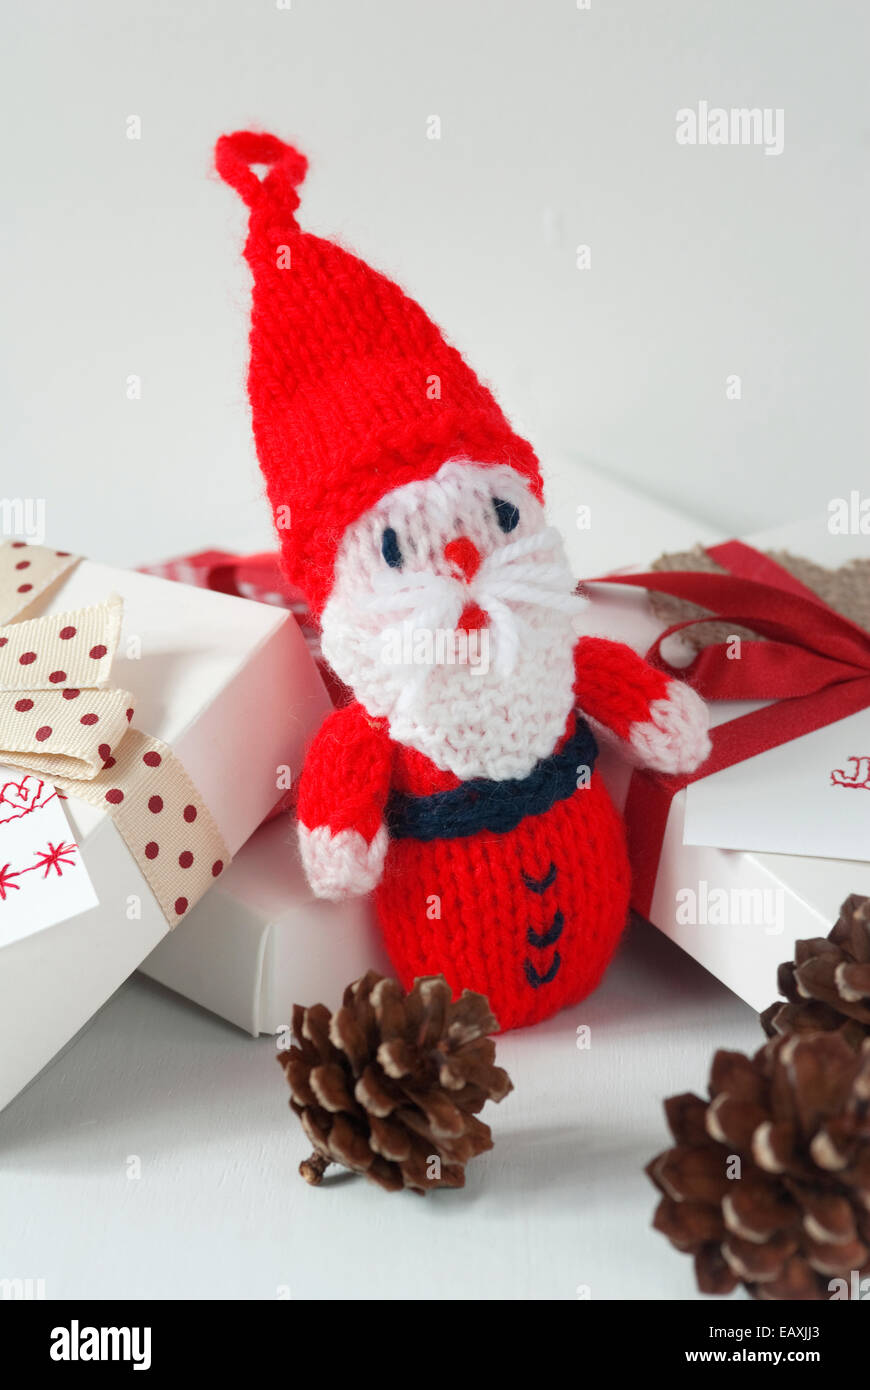 a5c20e16b2aa2 Scandinavian style still life image of knitted Santa Claus with pine cones  - Stock Image